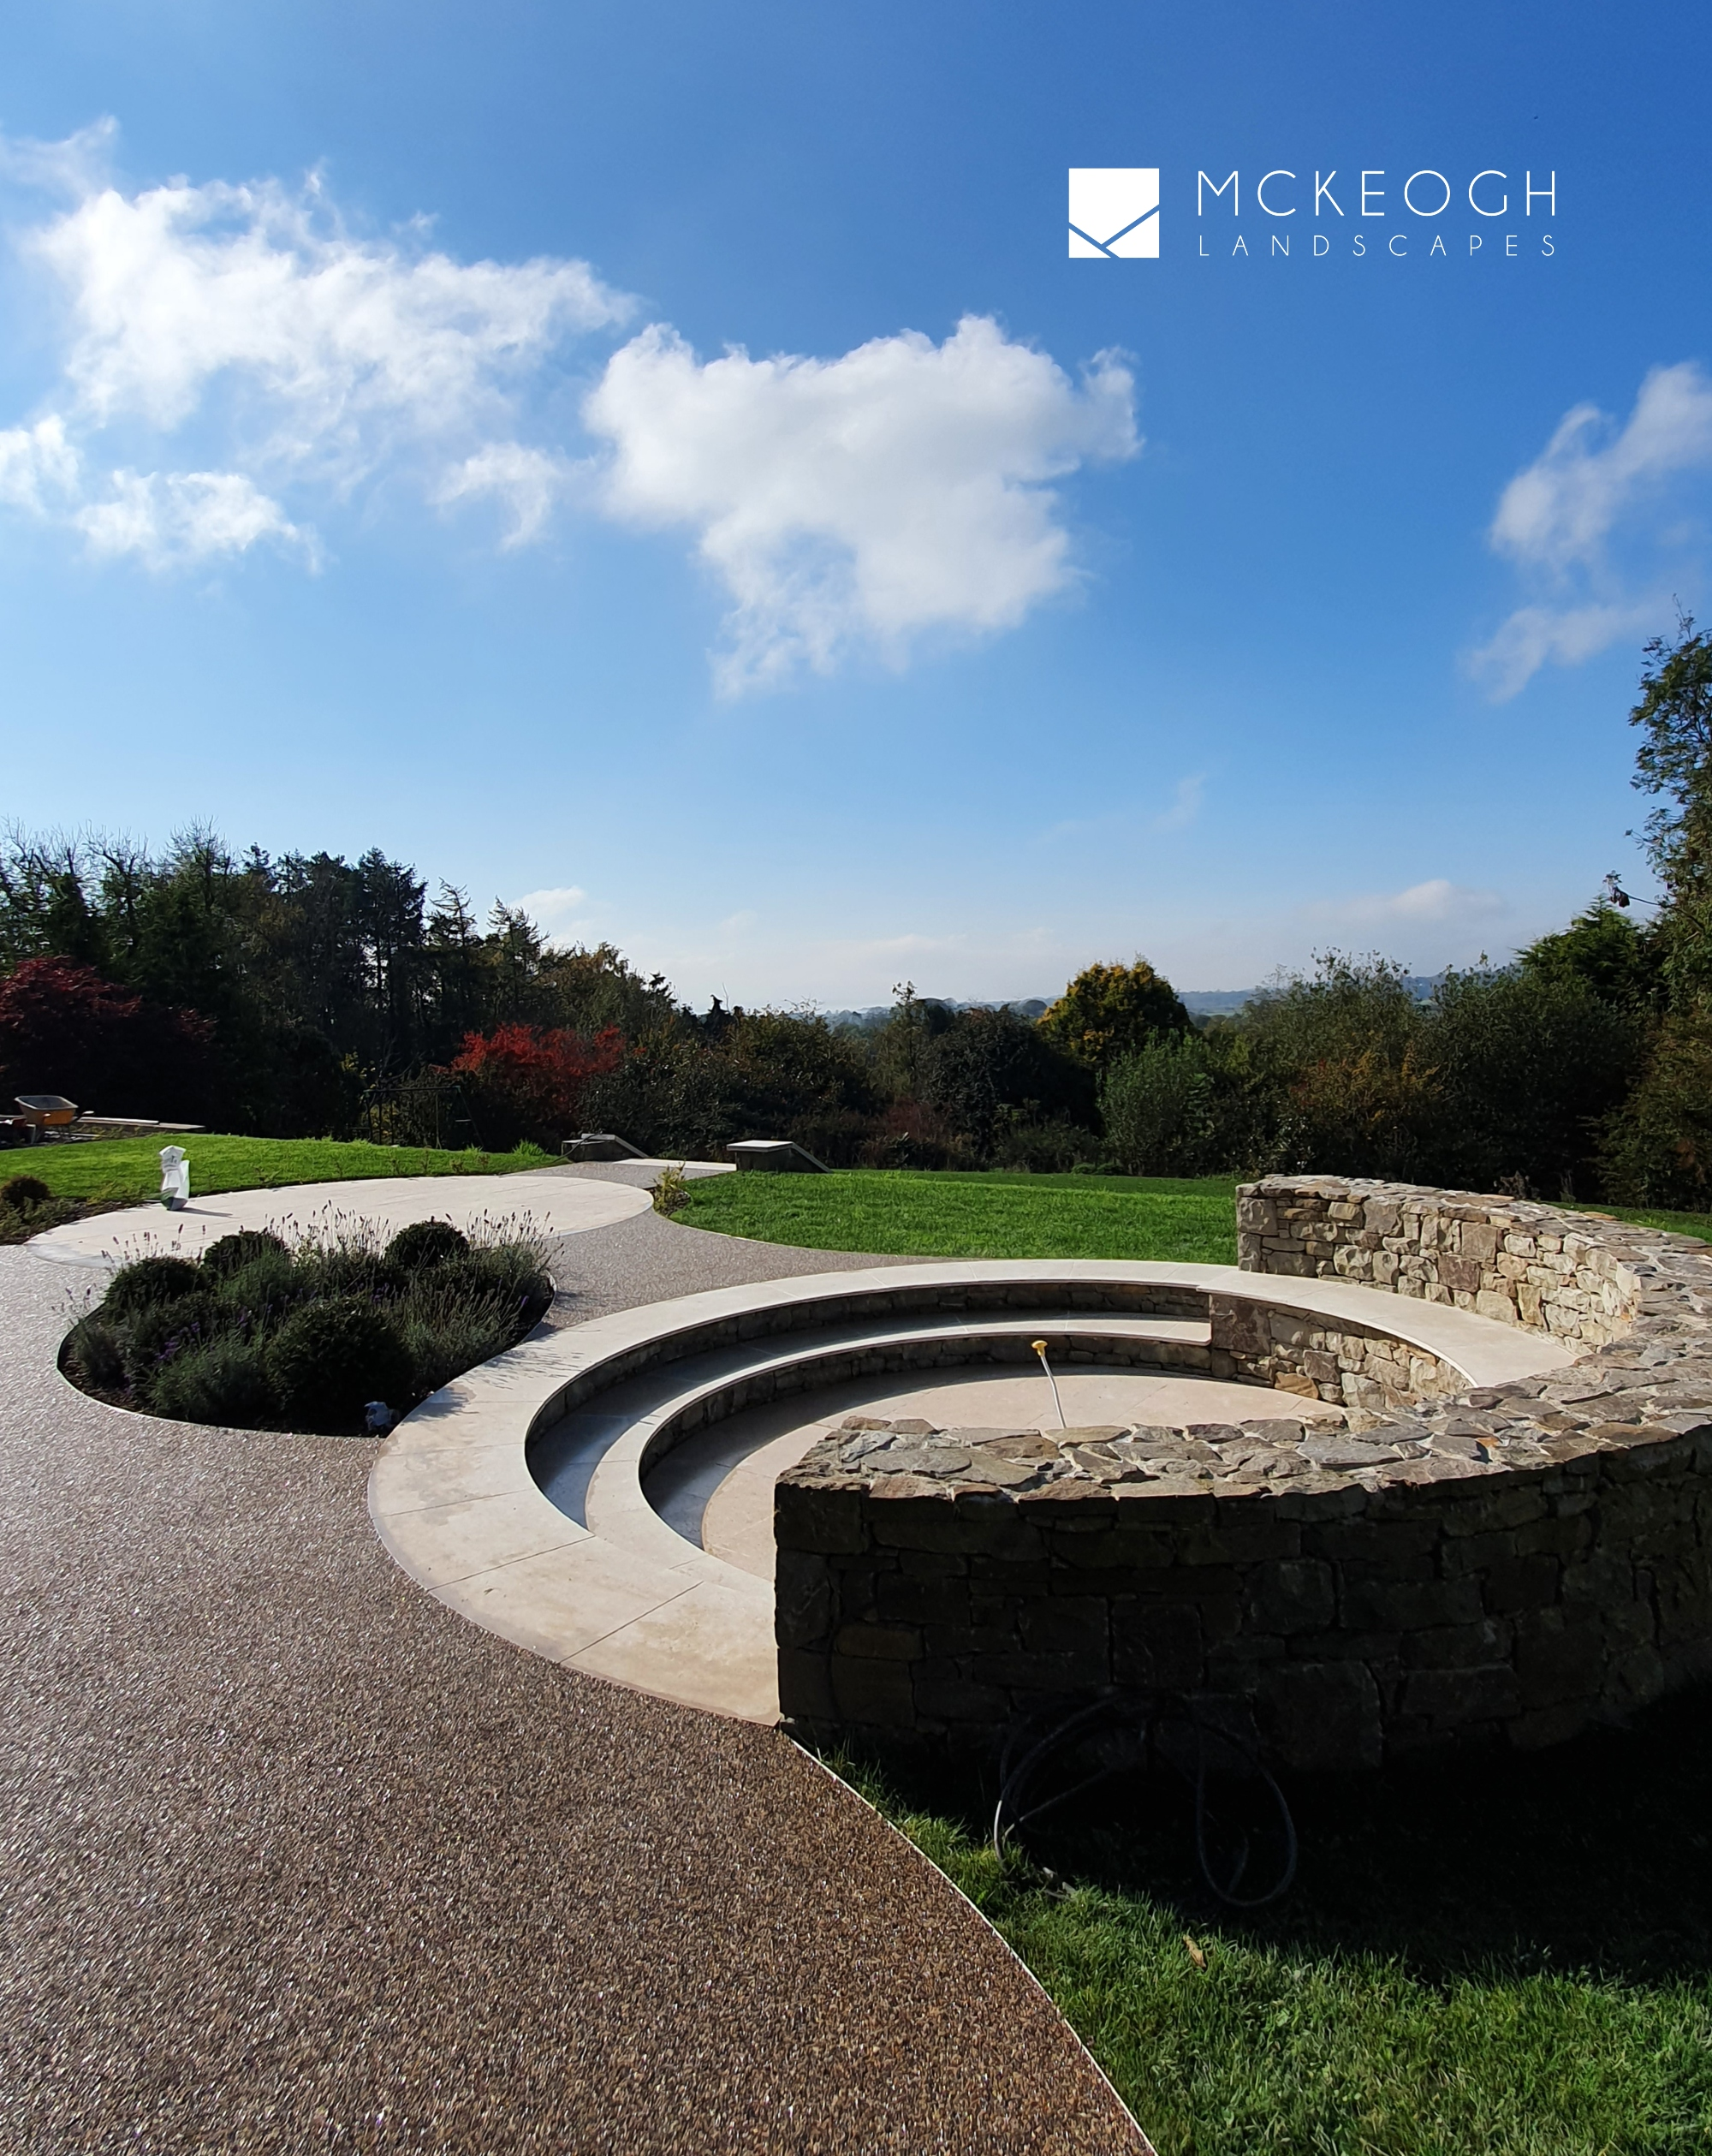 Circular sunken seating area using a mix of Egyptian Limestone, resin bound gravel and natural stone walls